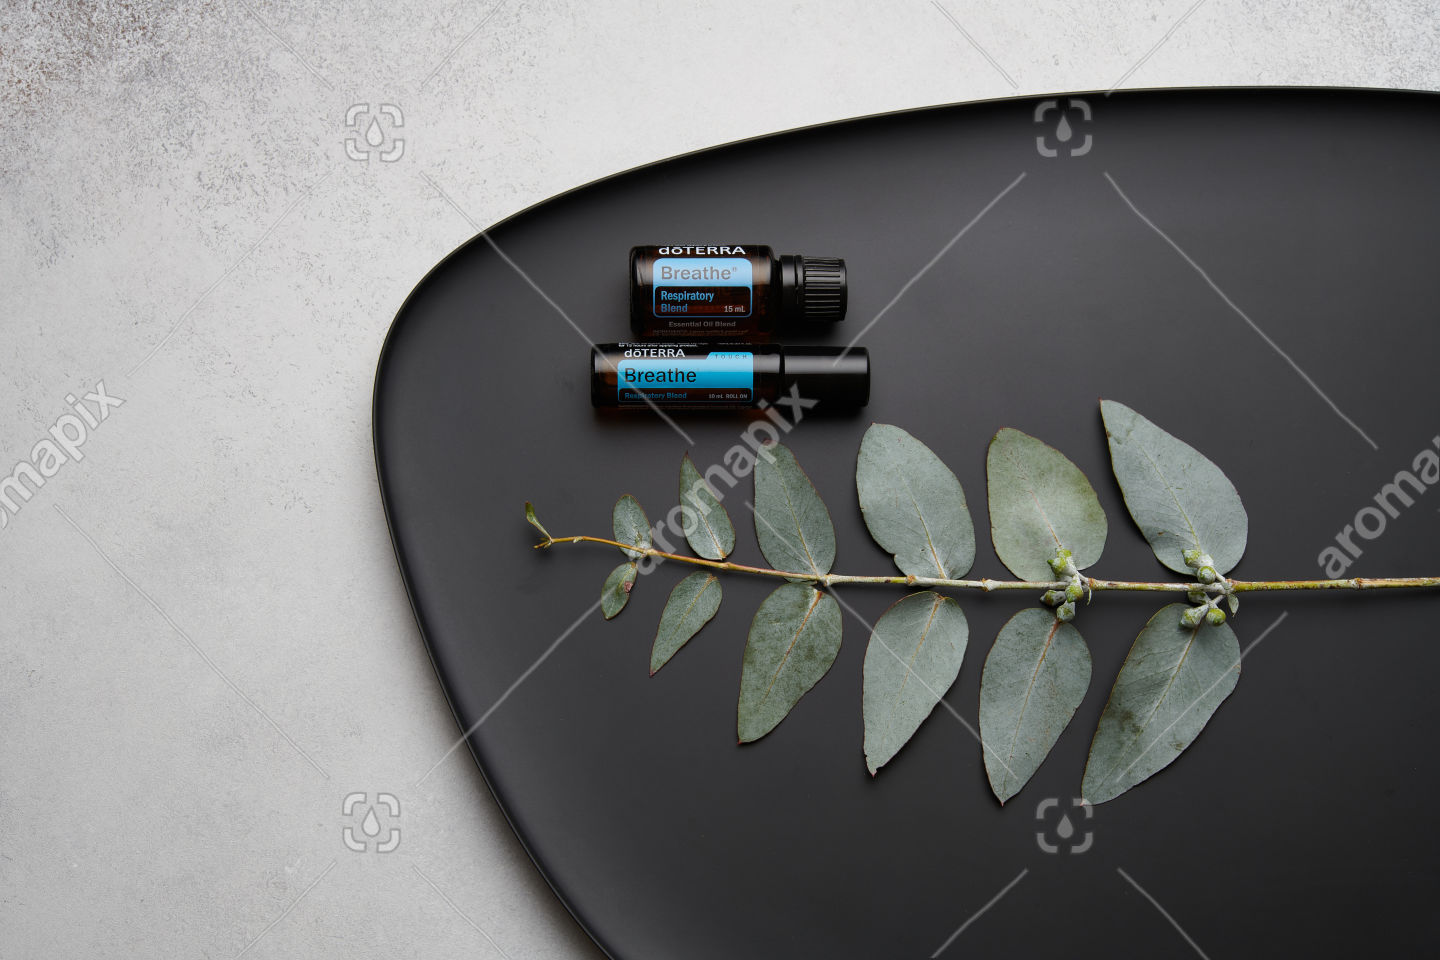 doTERRA Breathe, Breathe Touch and eucalyptus leaves on black plate